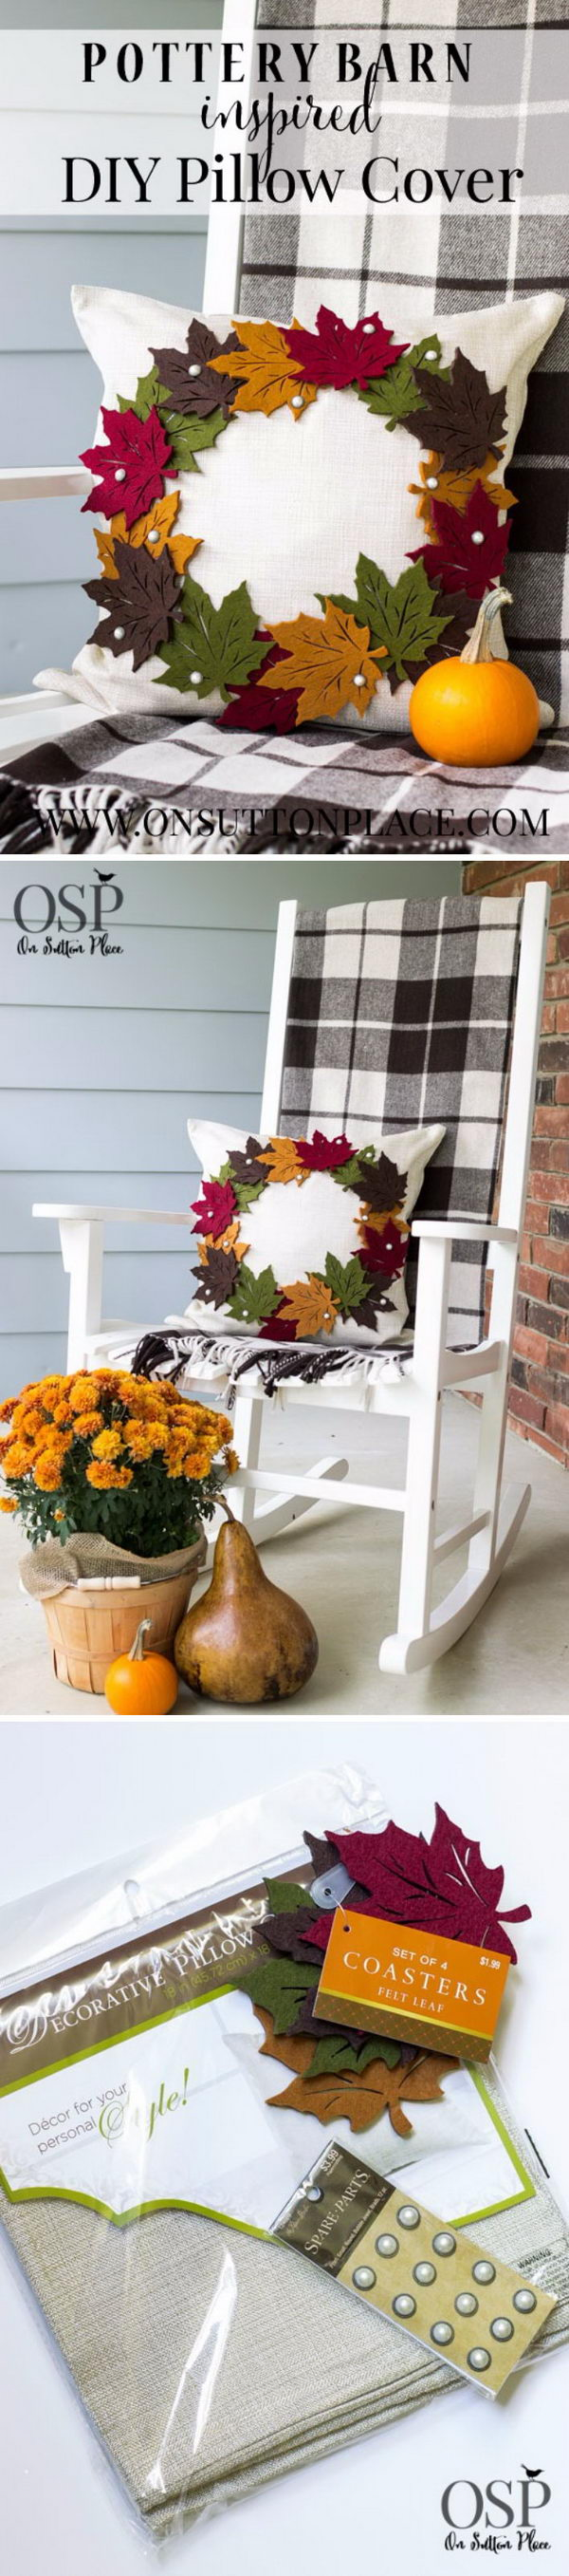 DIY Pottery Barn Inspired Fall Wreath Pillow.